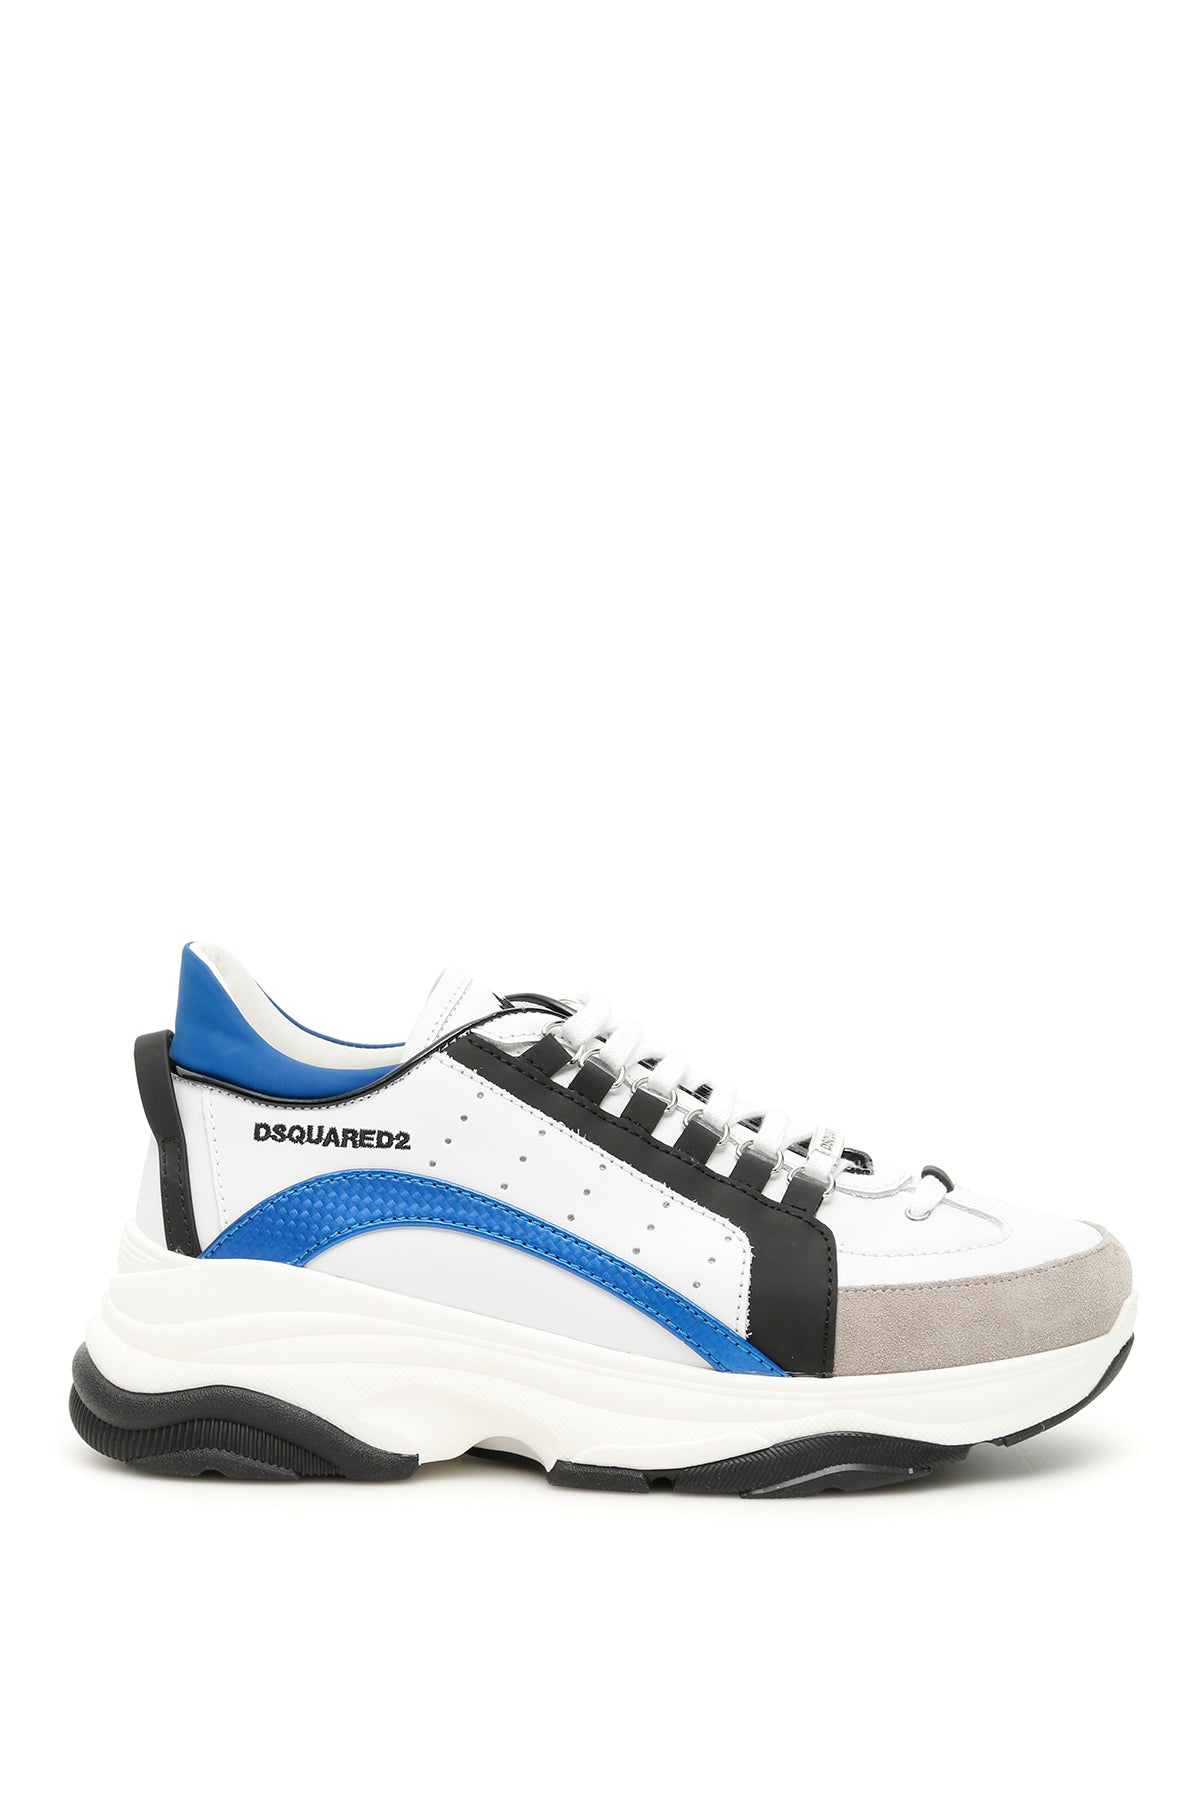 Dsquared2 Sneakers DSQUARED2 BUMPY 551 SNEAKERS